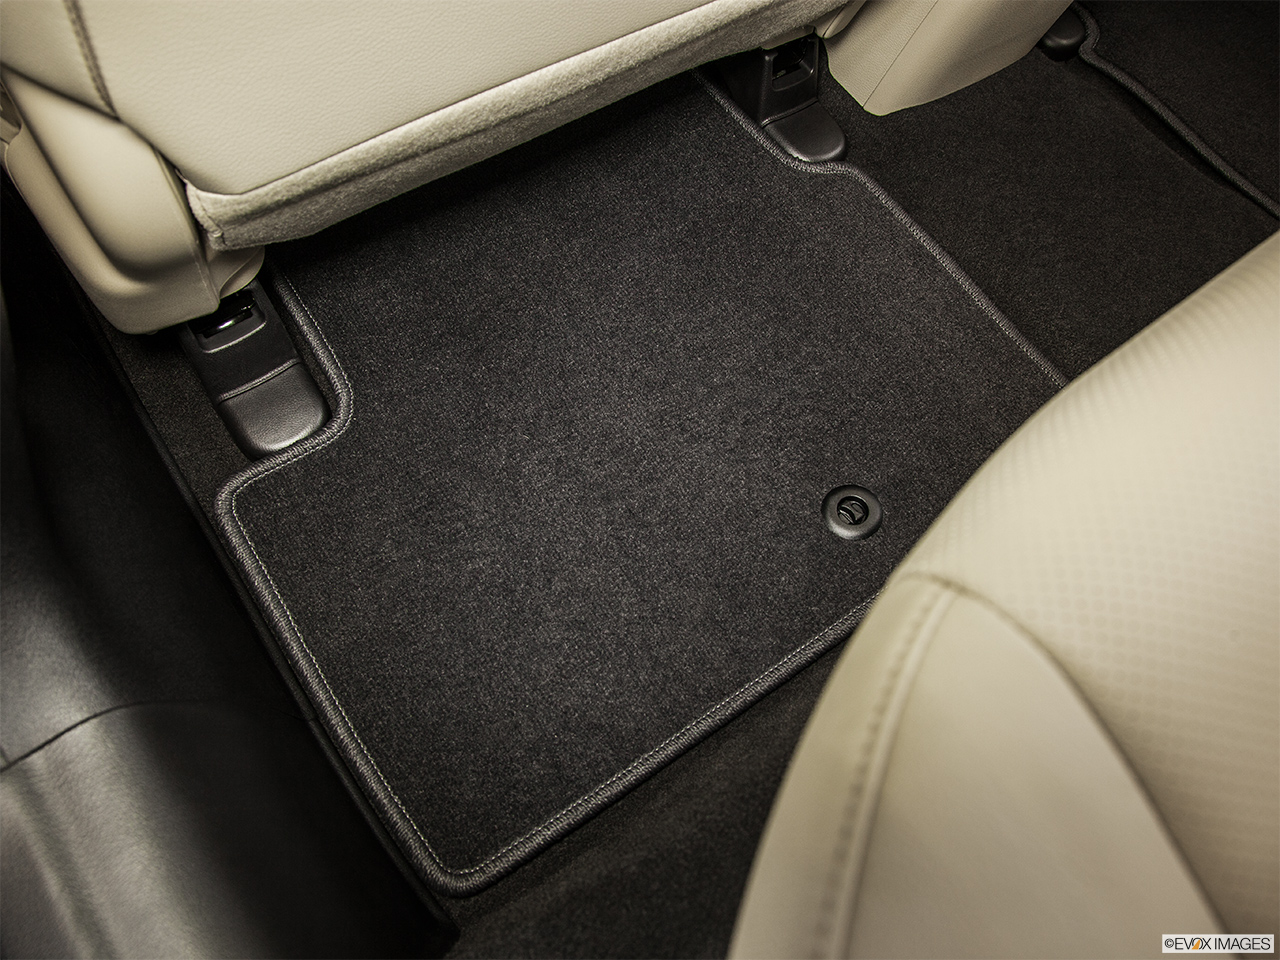 2014 Acura ILX Hybrid Base Rear driver's side floor mat. Mid-seat level from outside looking in.